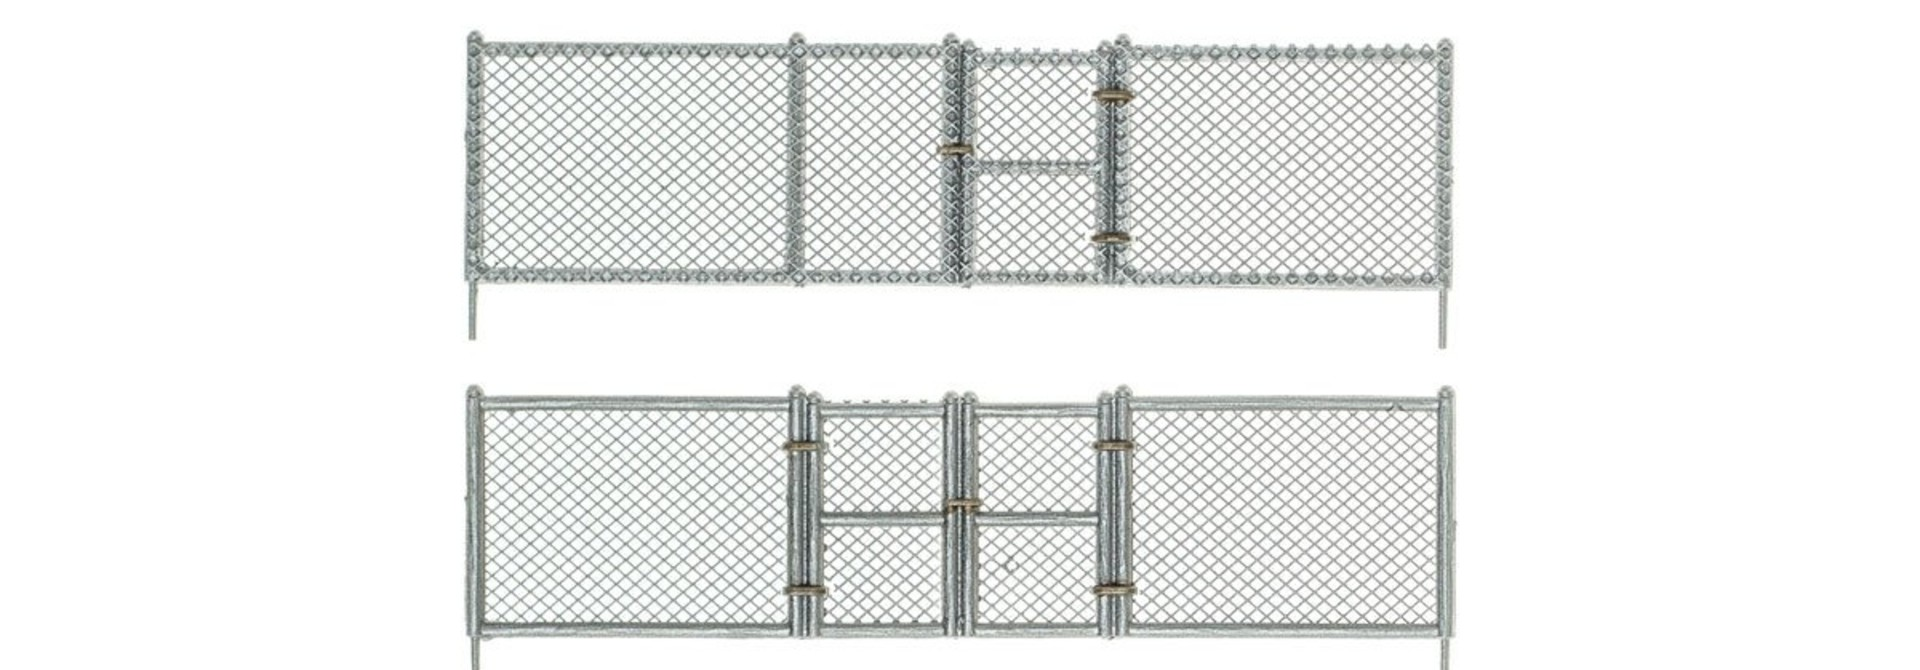 1:87 chain link fence